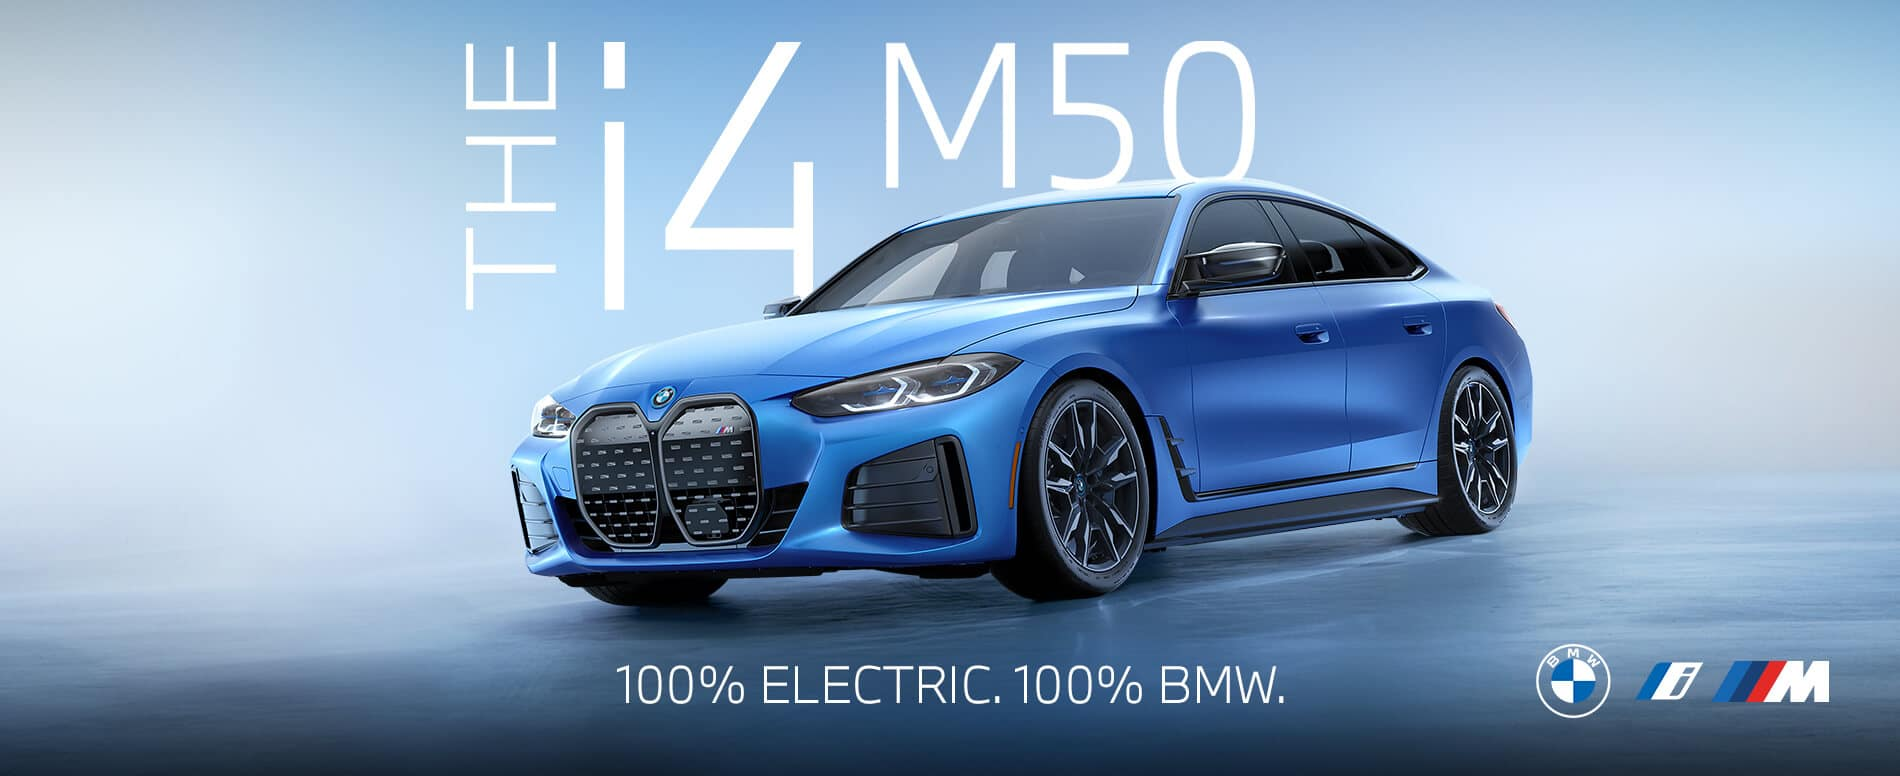 THE i4 M50 100% ELECTRIC. 100% BMW